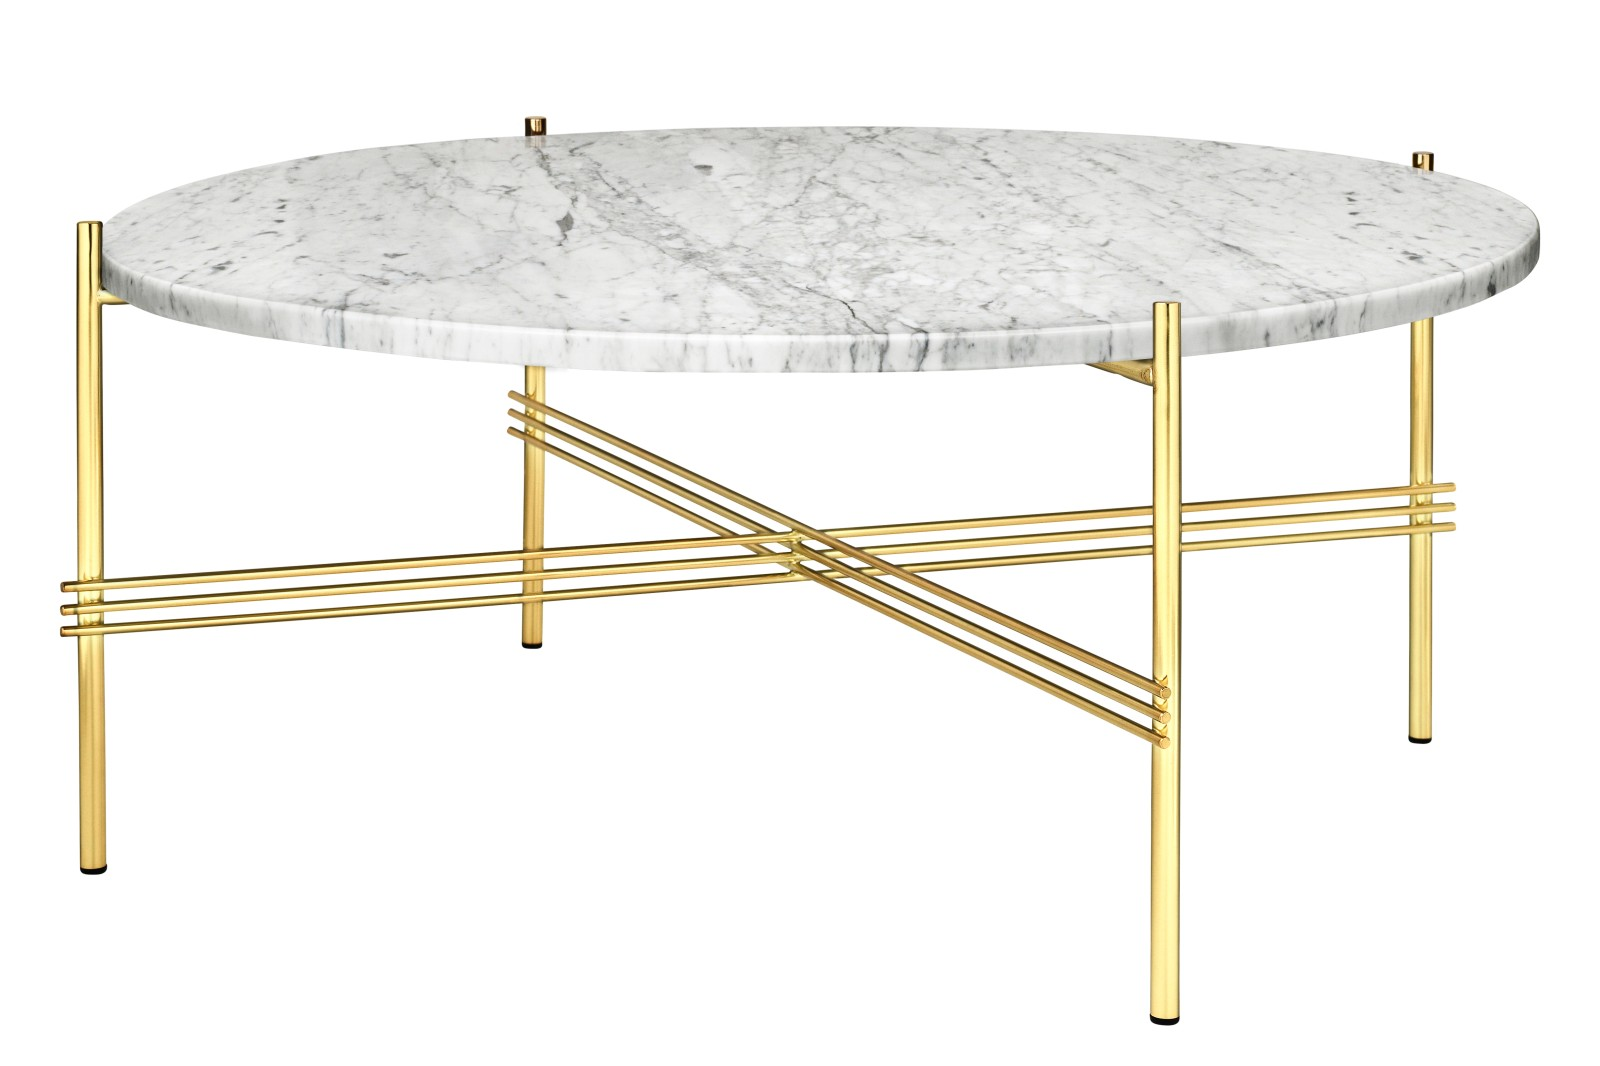 TS Round Coffee Table with Marble Top in Black Frame Gubi Marble Bianco Carrara, Gubi Metal Brass, 0